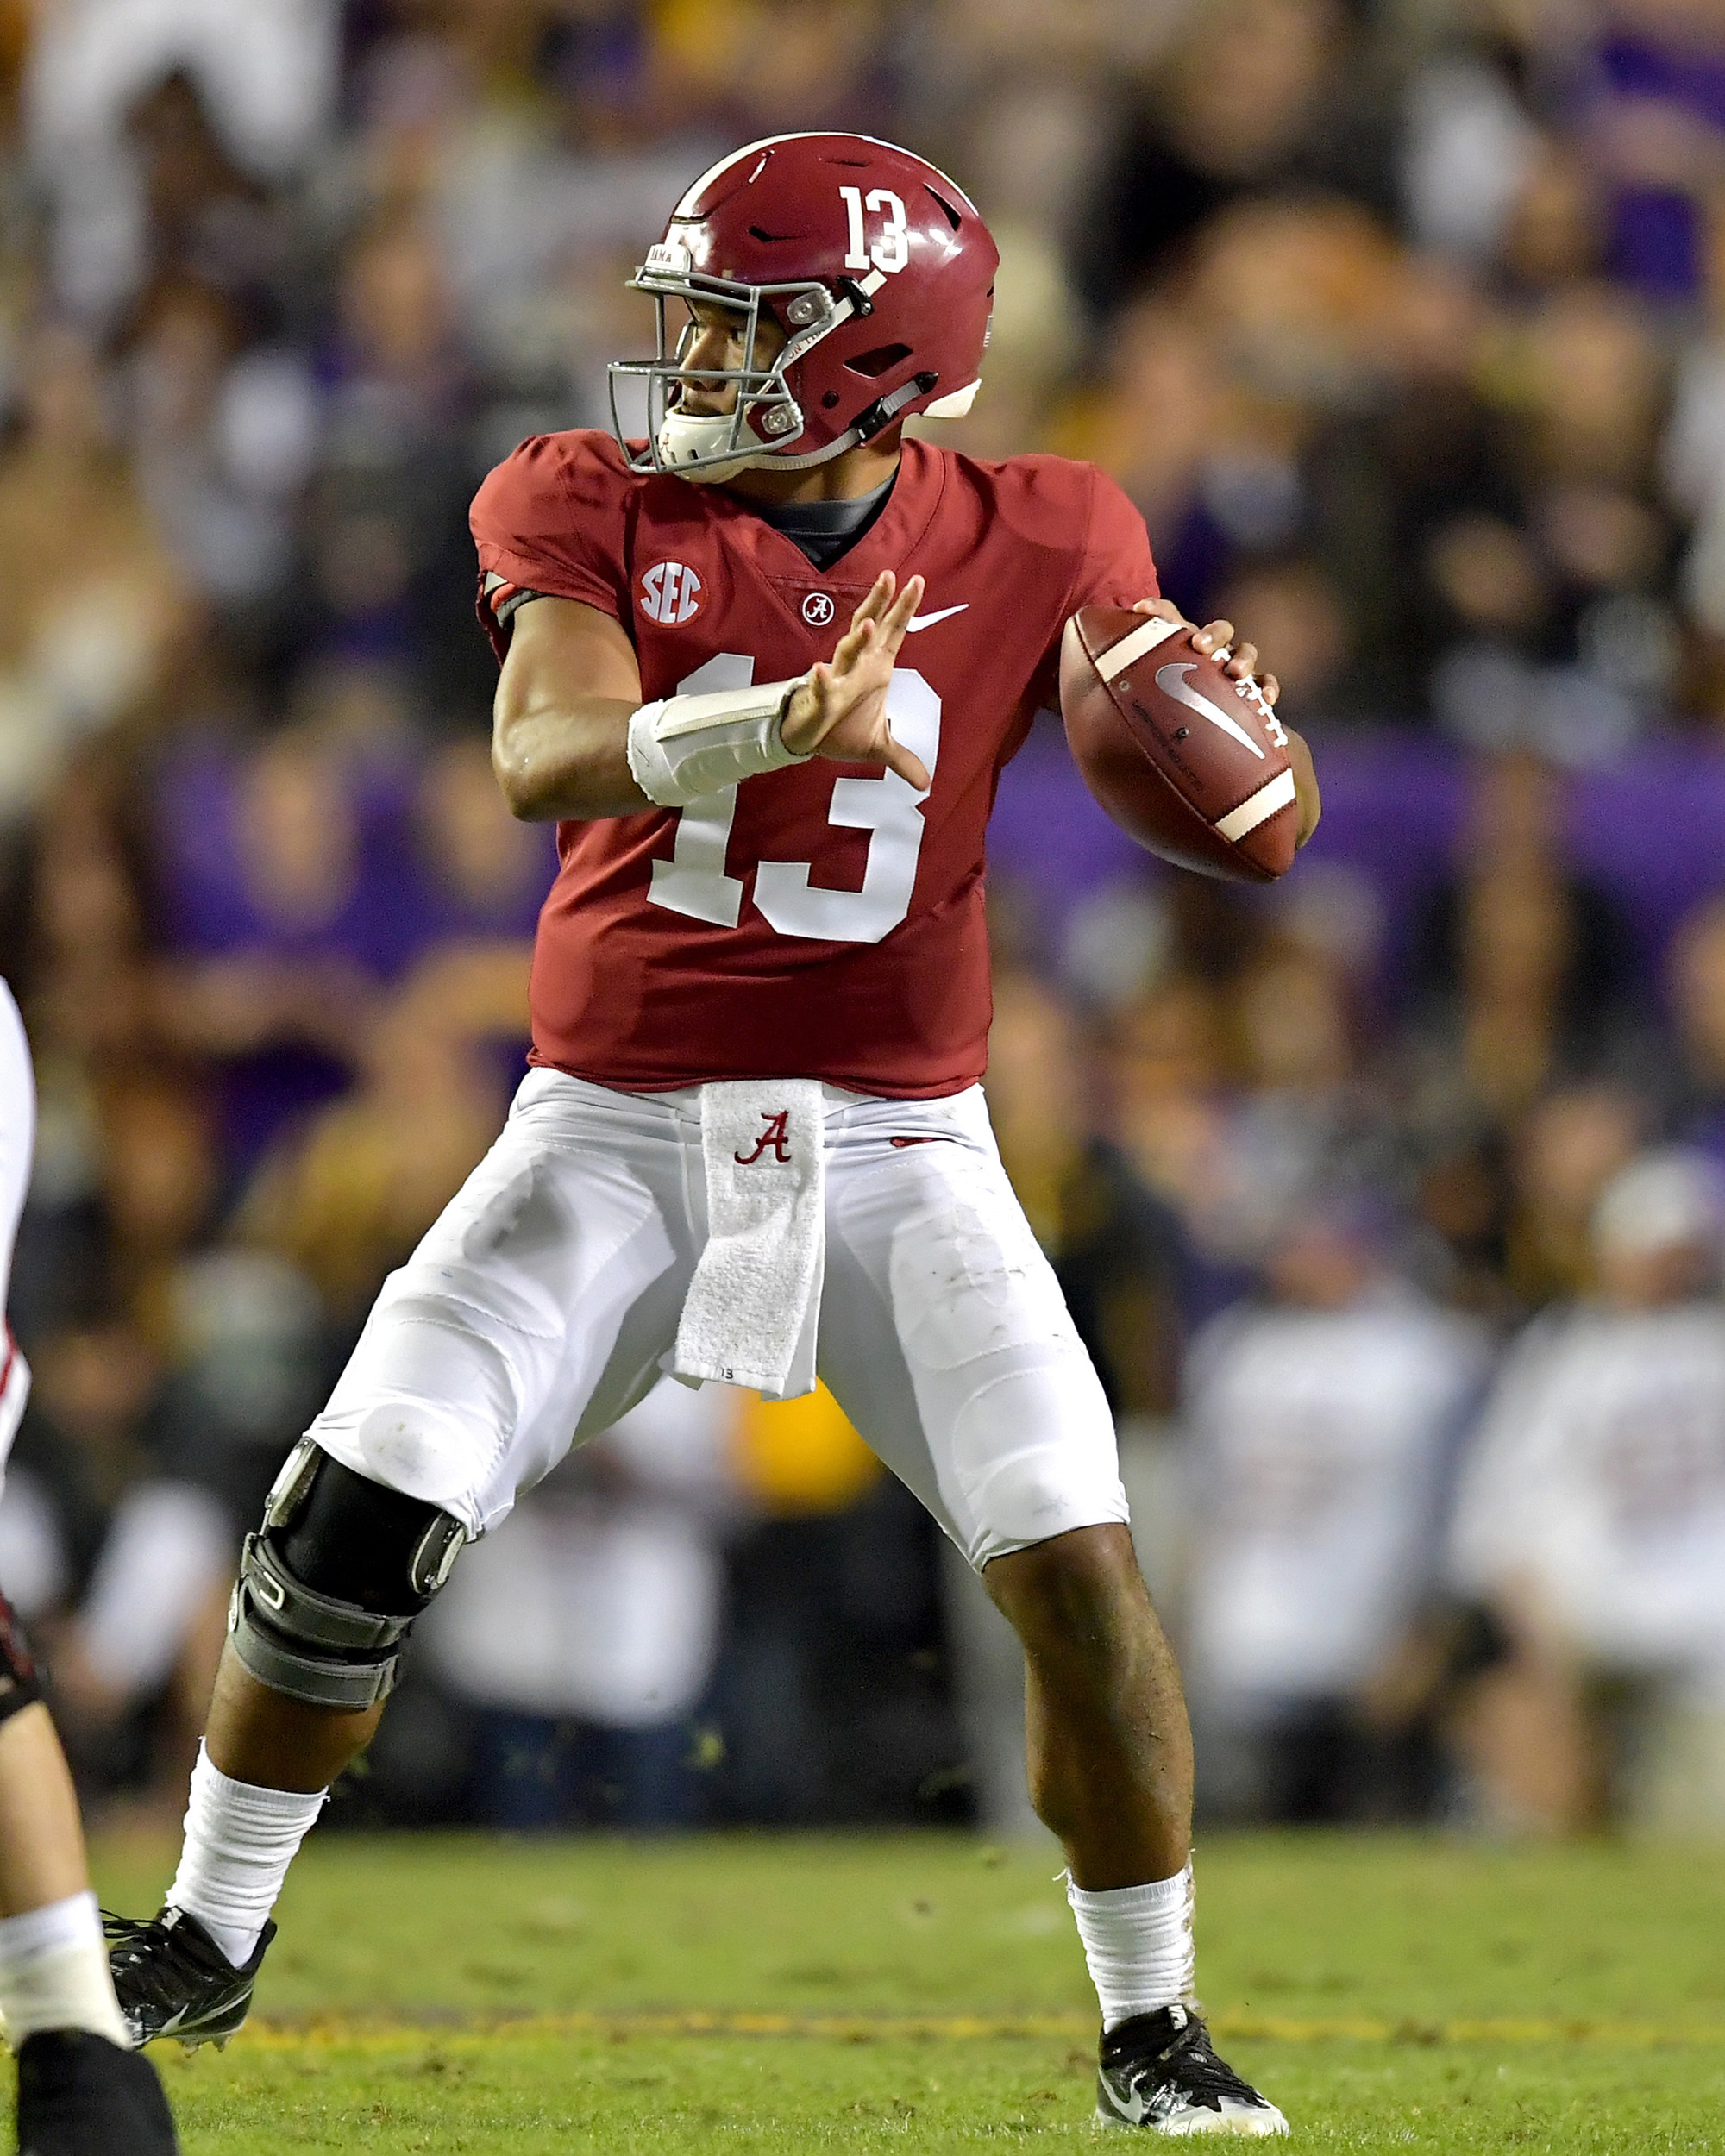 Alabama Crimson Tide quarterback Tua Tagovailoa (13) drops back to pass in the first half of an NCAA football game against the LSU Tigers Saturday, November 3, 2018, at Tiger Stadium in Baton Rouge, La.  Alabama wins 29-0. (Photo by Lee Walls)